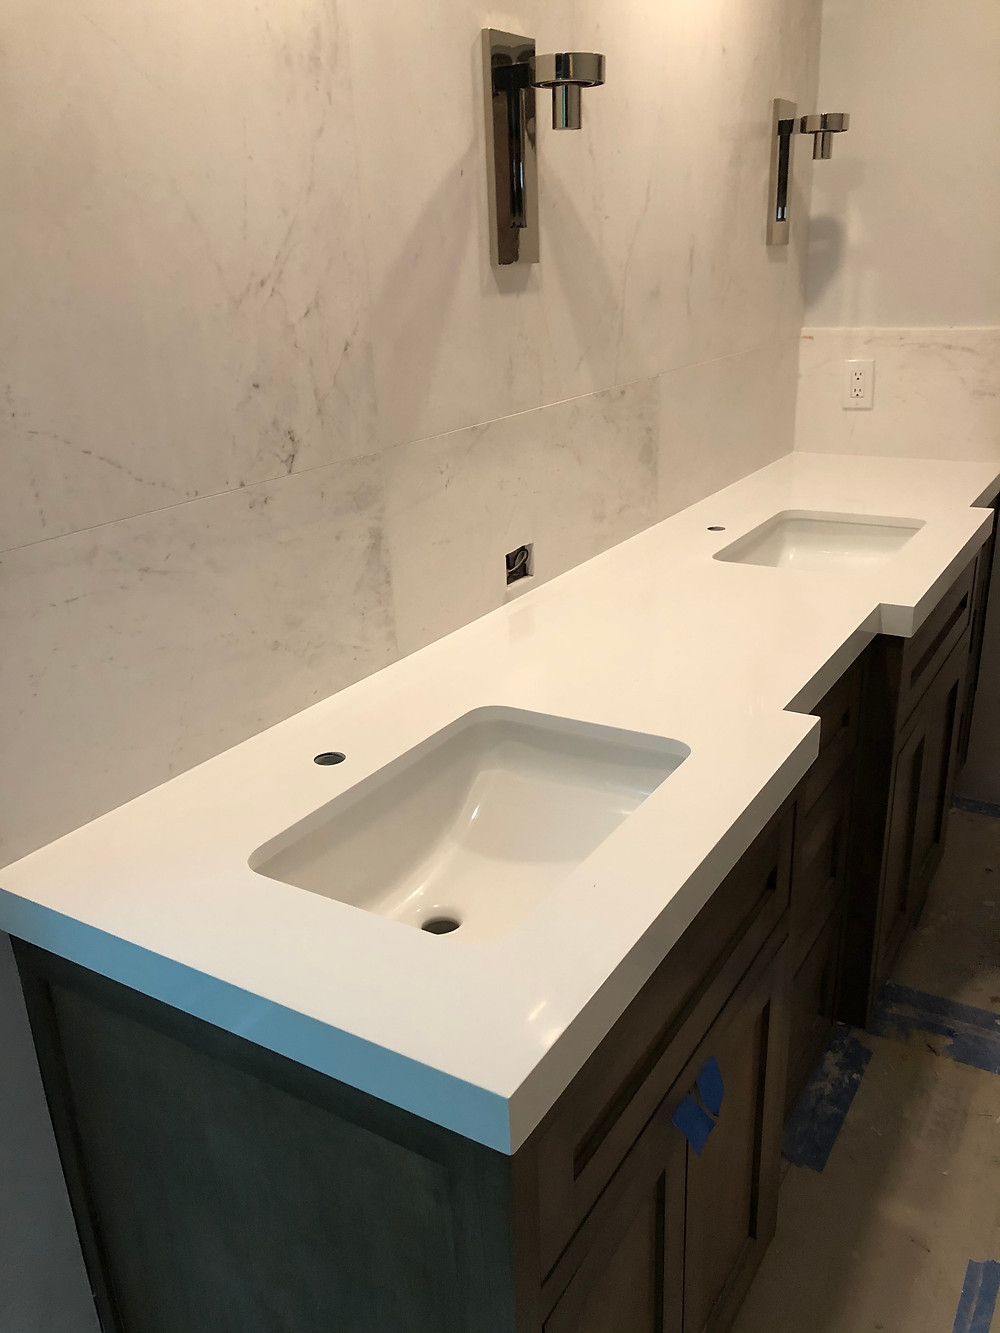 White quartz countertops fabrication and installation near me Boca Raton FL. Contact Stone and Quartz LLC